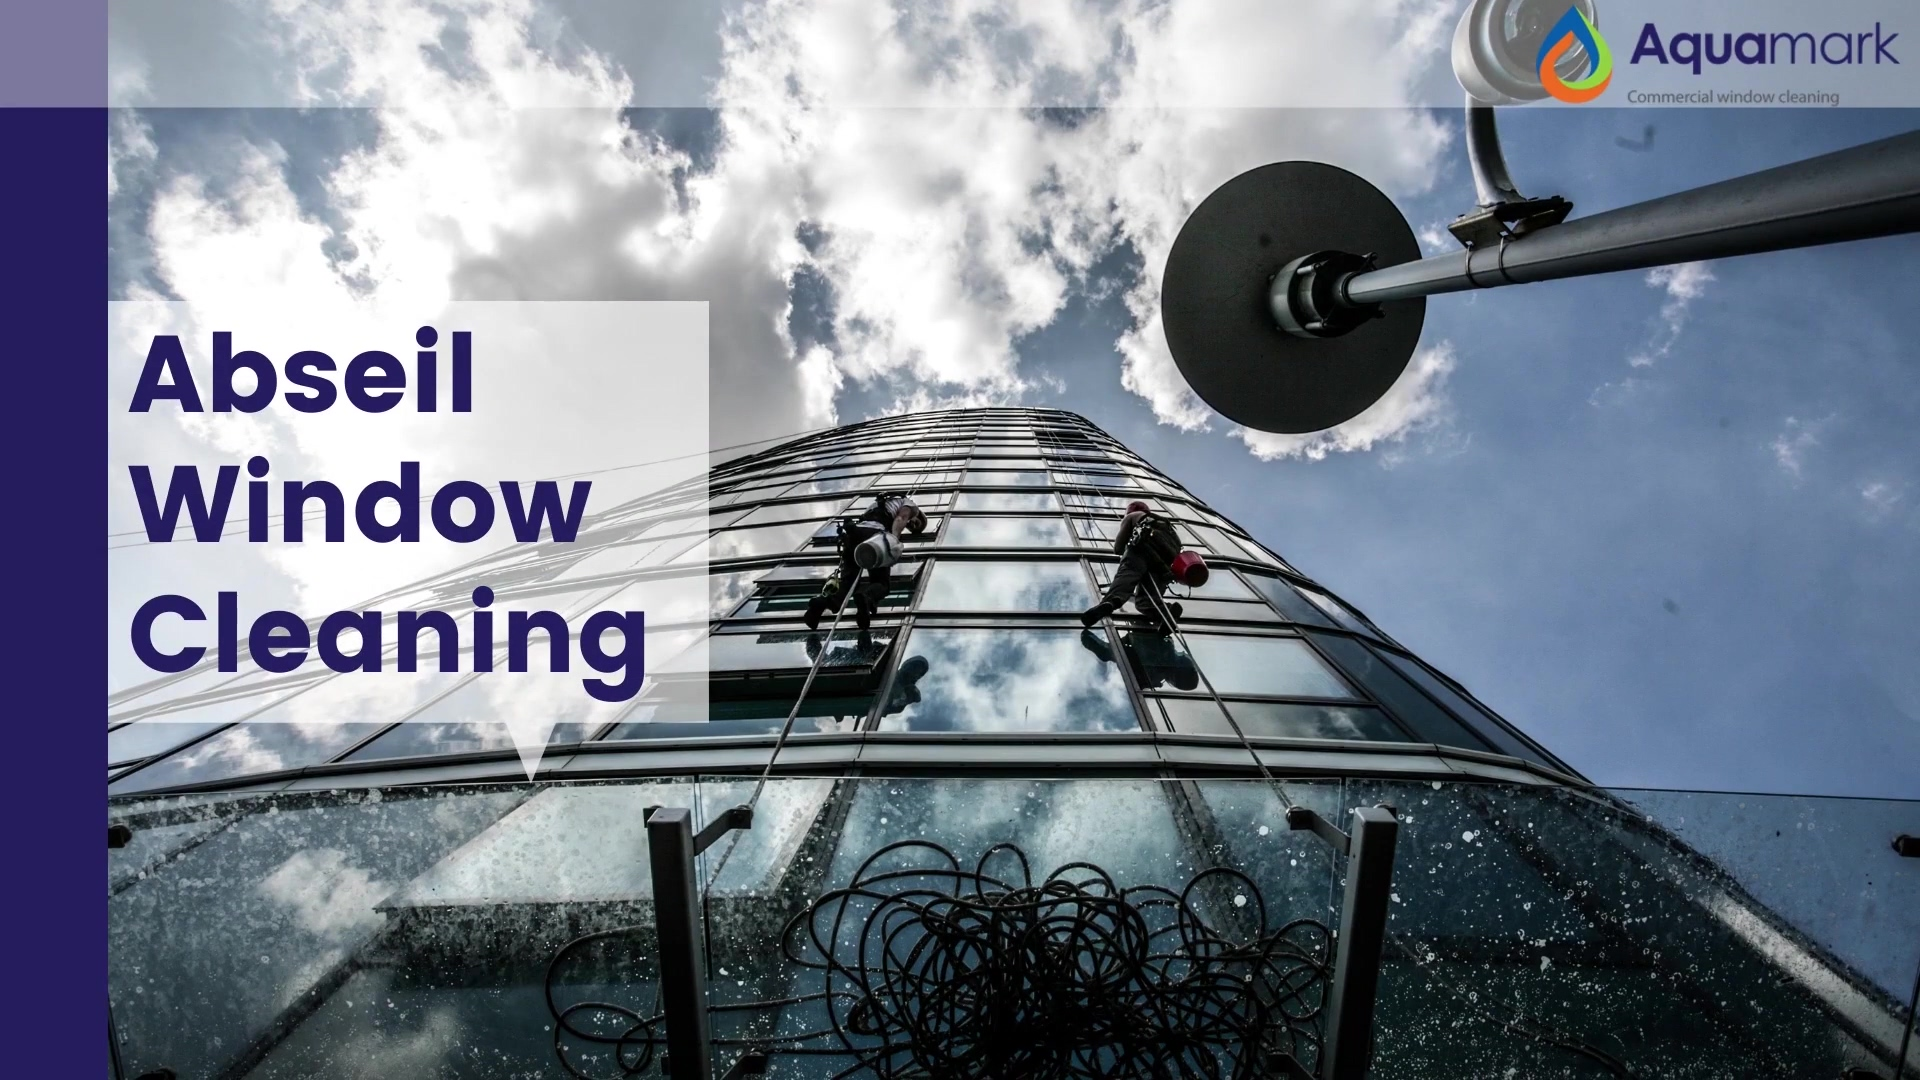 Abseil Window Cleaning Video Final